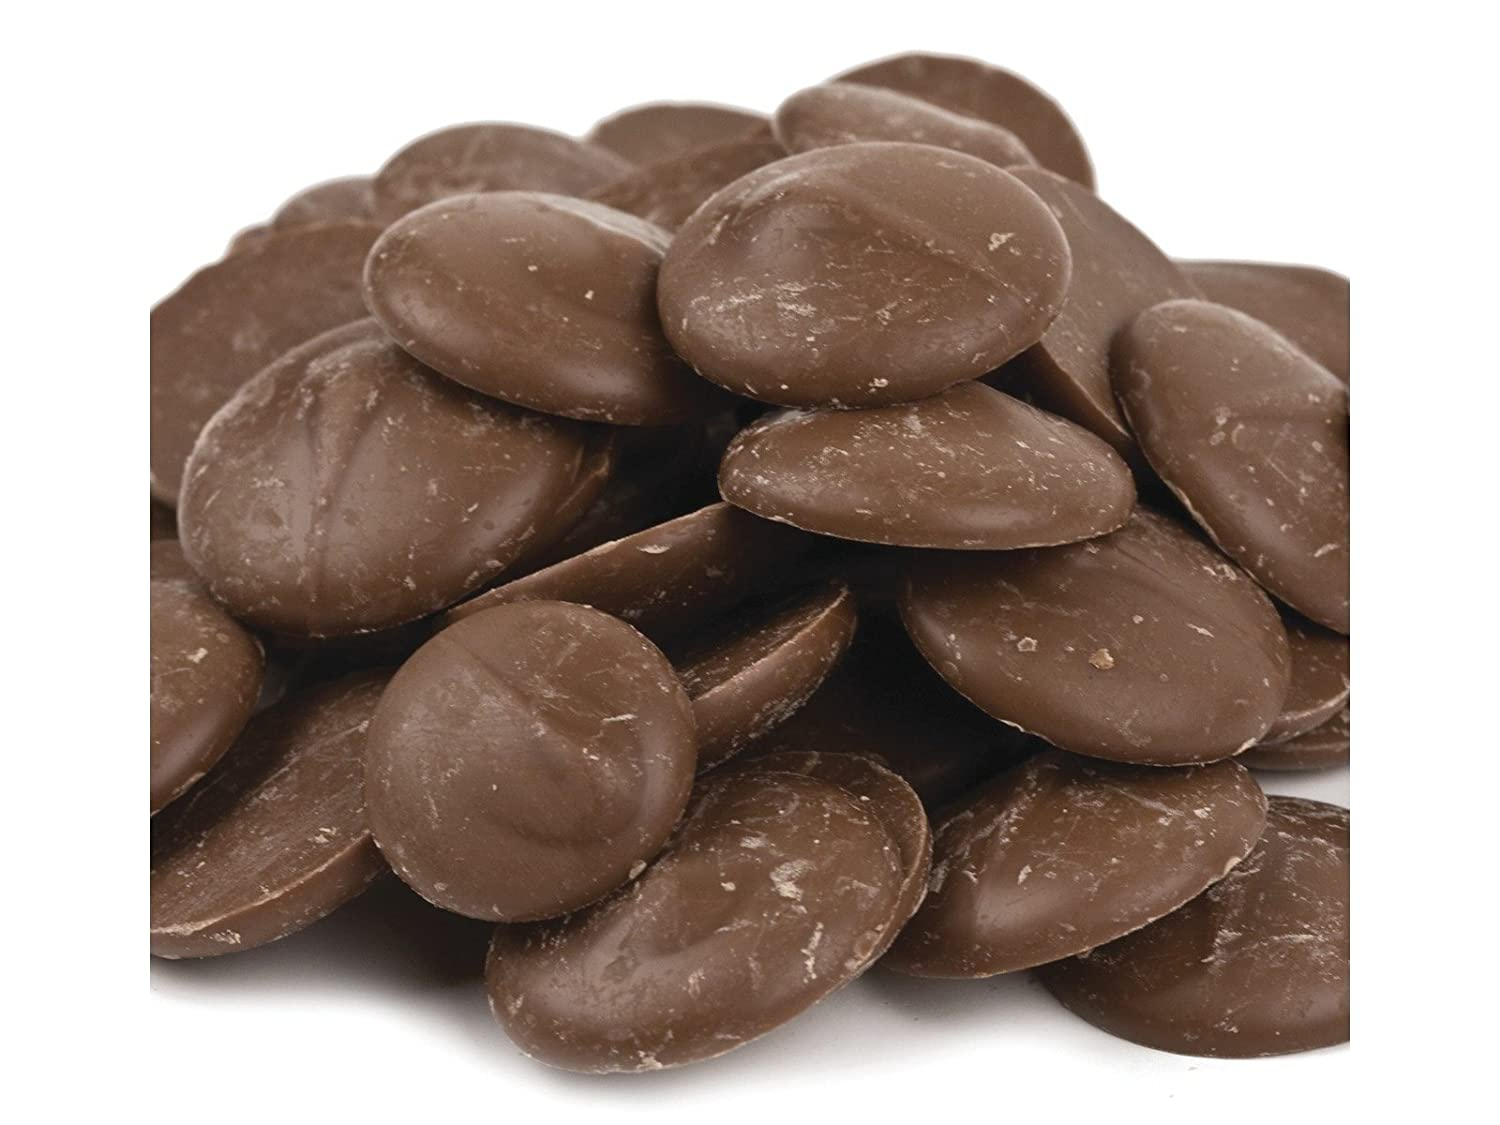 Merckens Coating Wafers Melting Wafers Cocoa Lite Milk 10 pounds